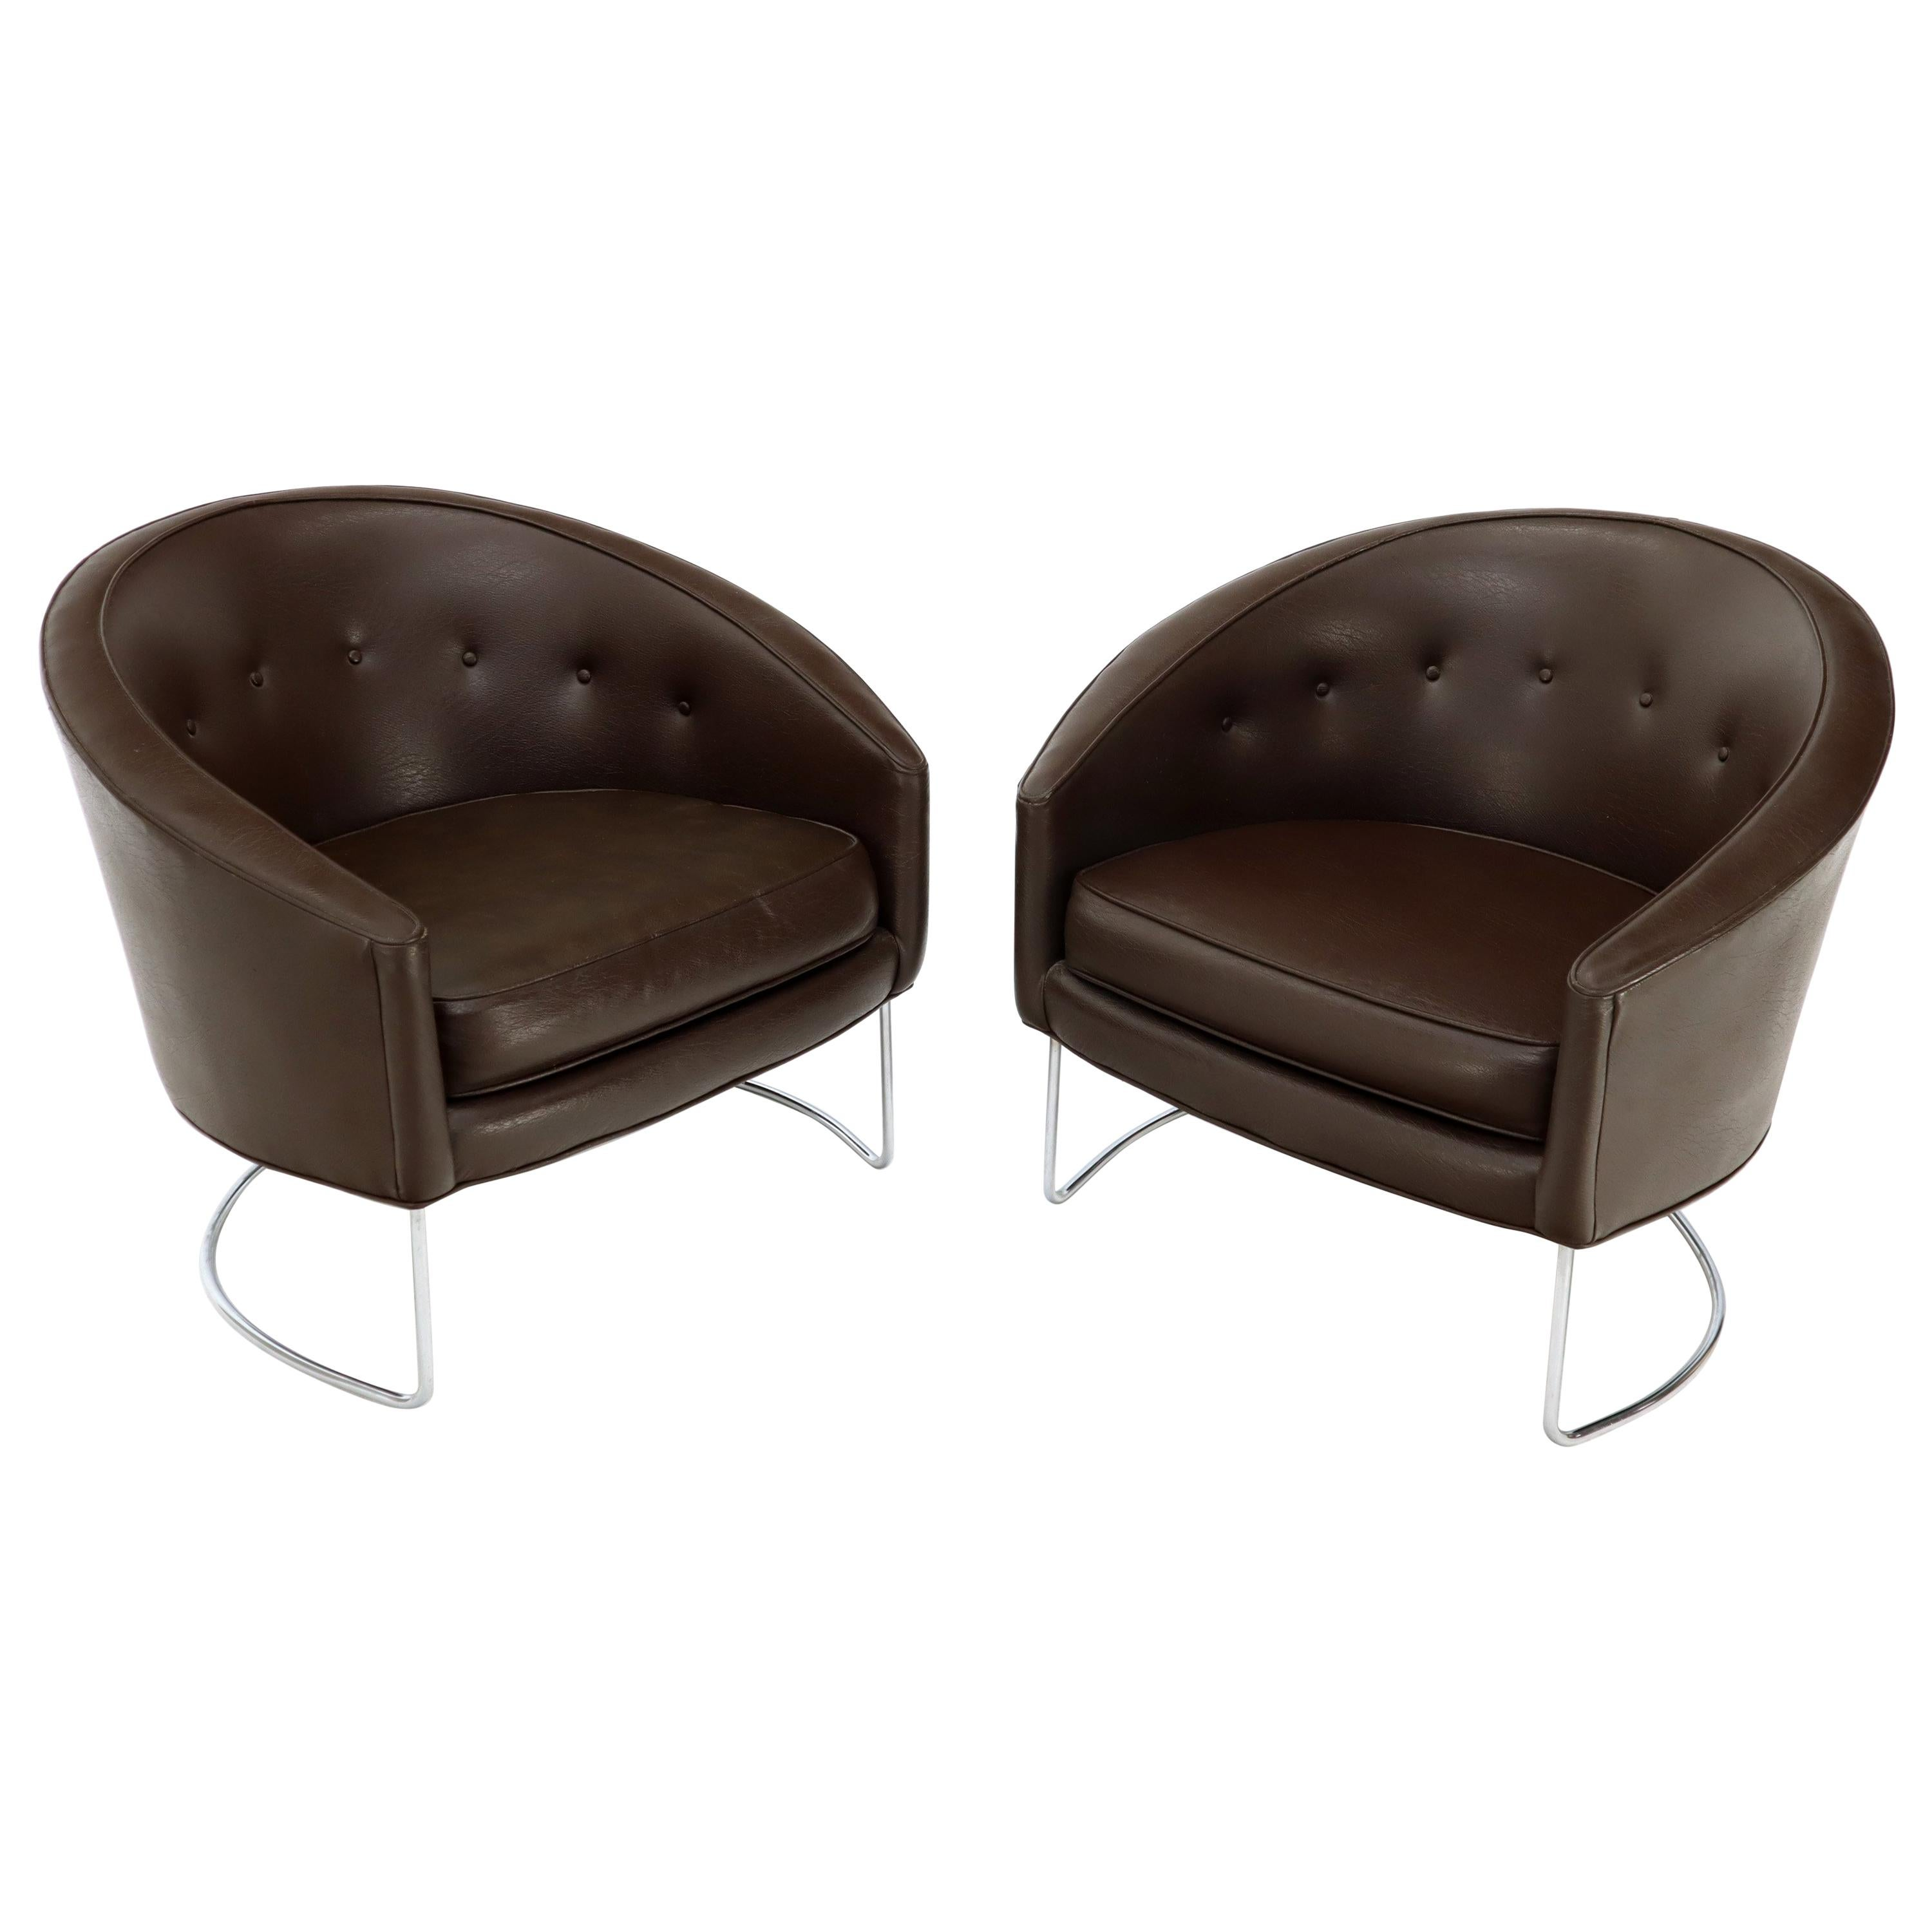 tub chair brown leather wide seat recliner chairs 47 for sale on 1stdibs